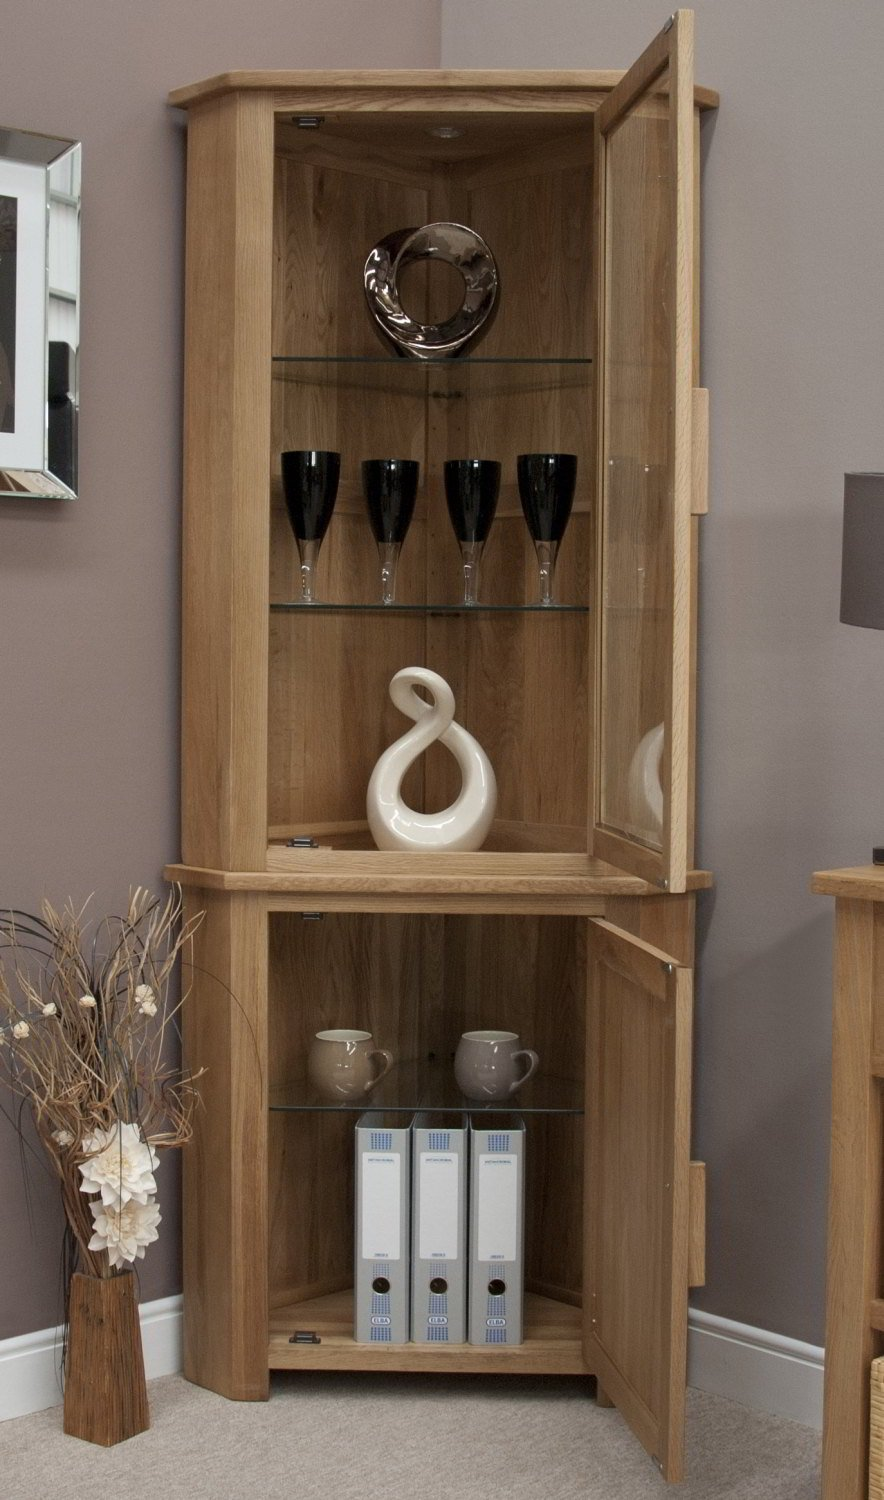 Eton Solid Oak Furniture Corner Display Cabinet Unit With Light:  Amazon.co.uk: Kitchen U0026 Home Part 52